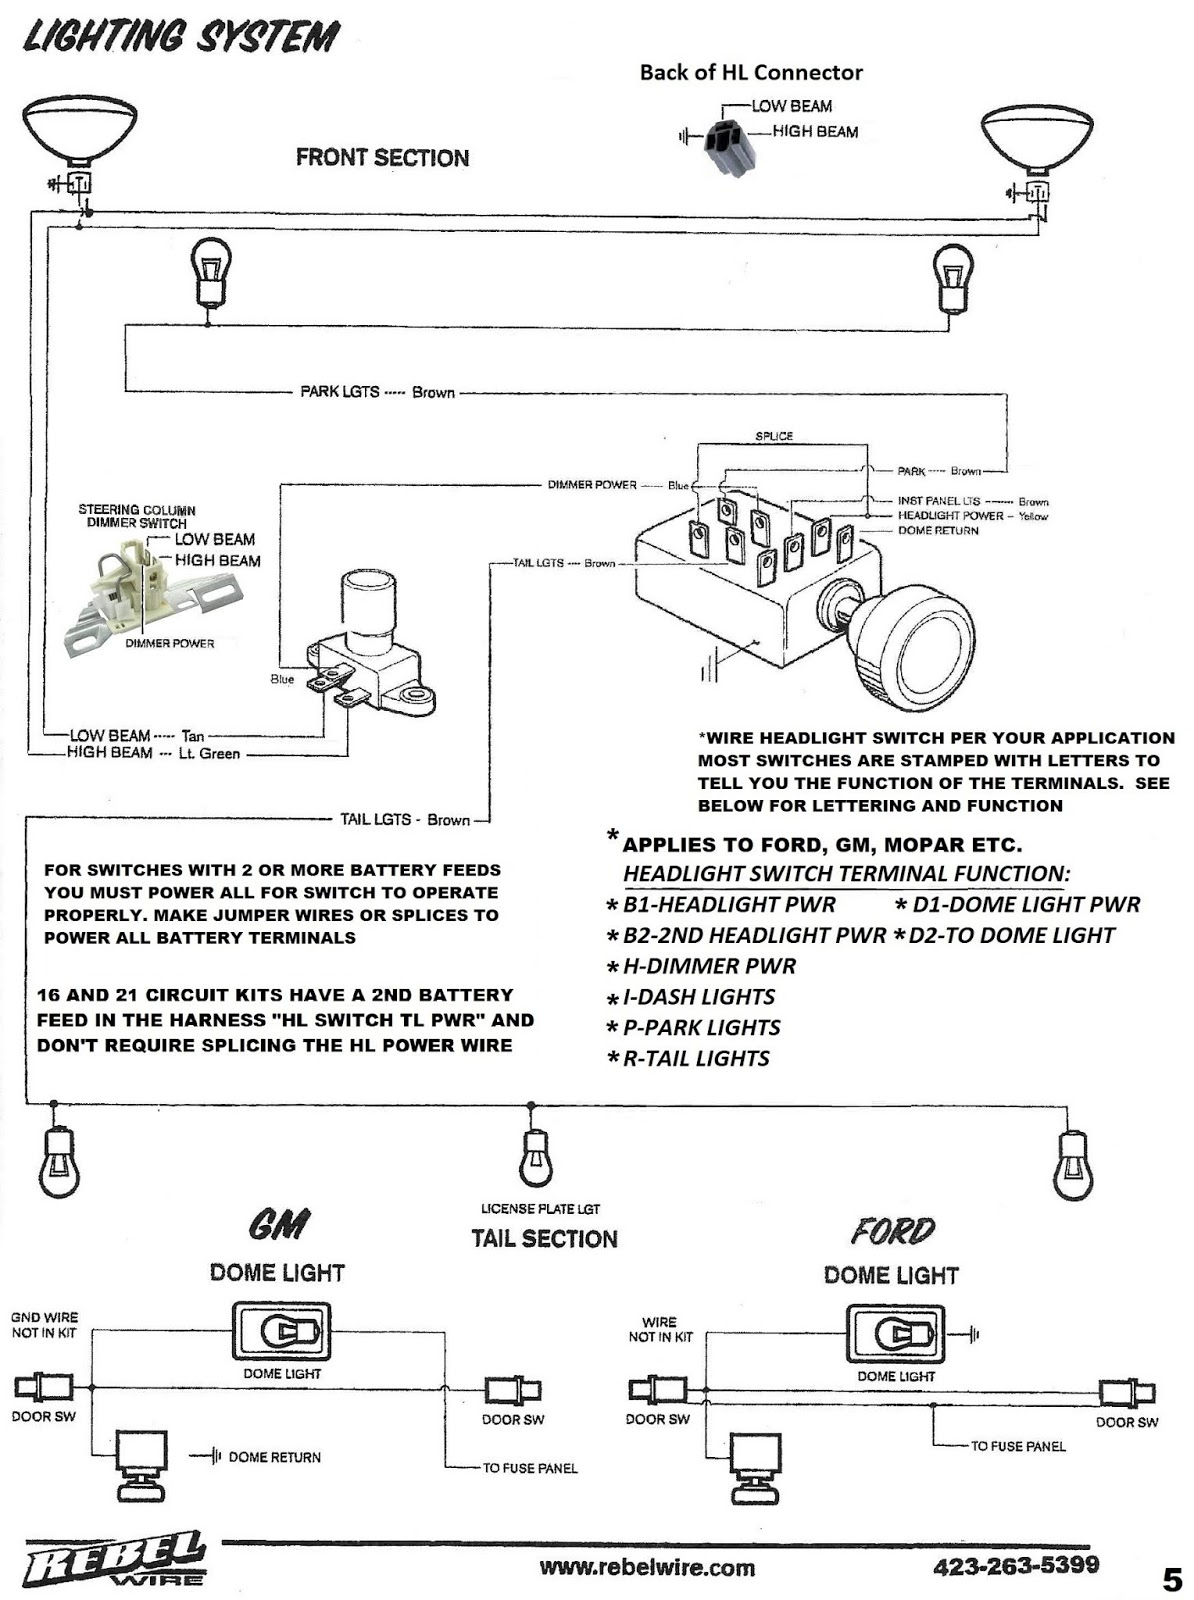 hight resolution of rebel wire lighting system wiring diagram